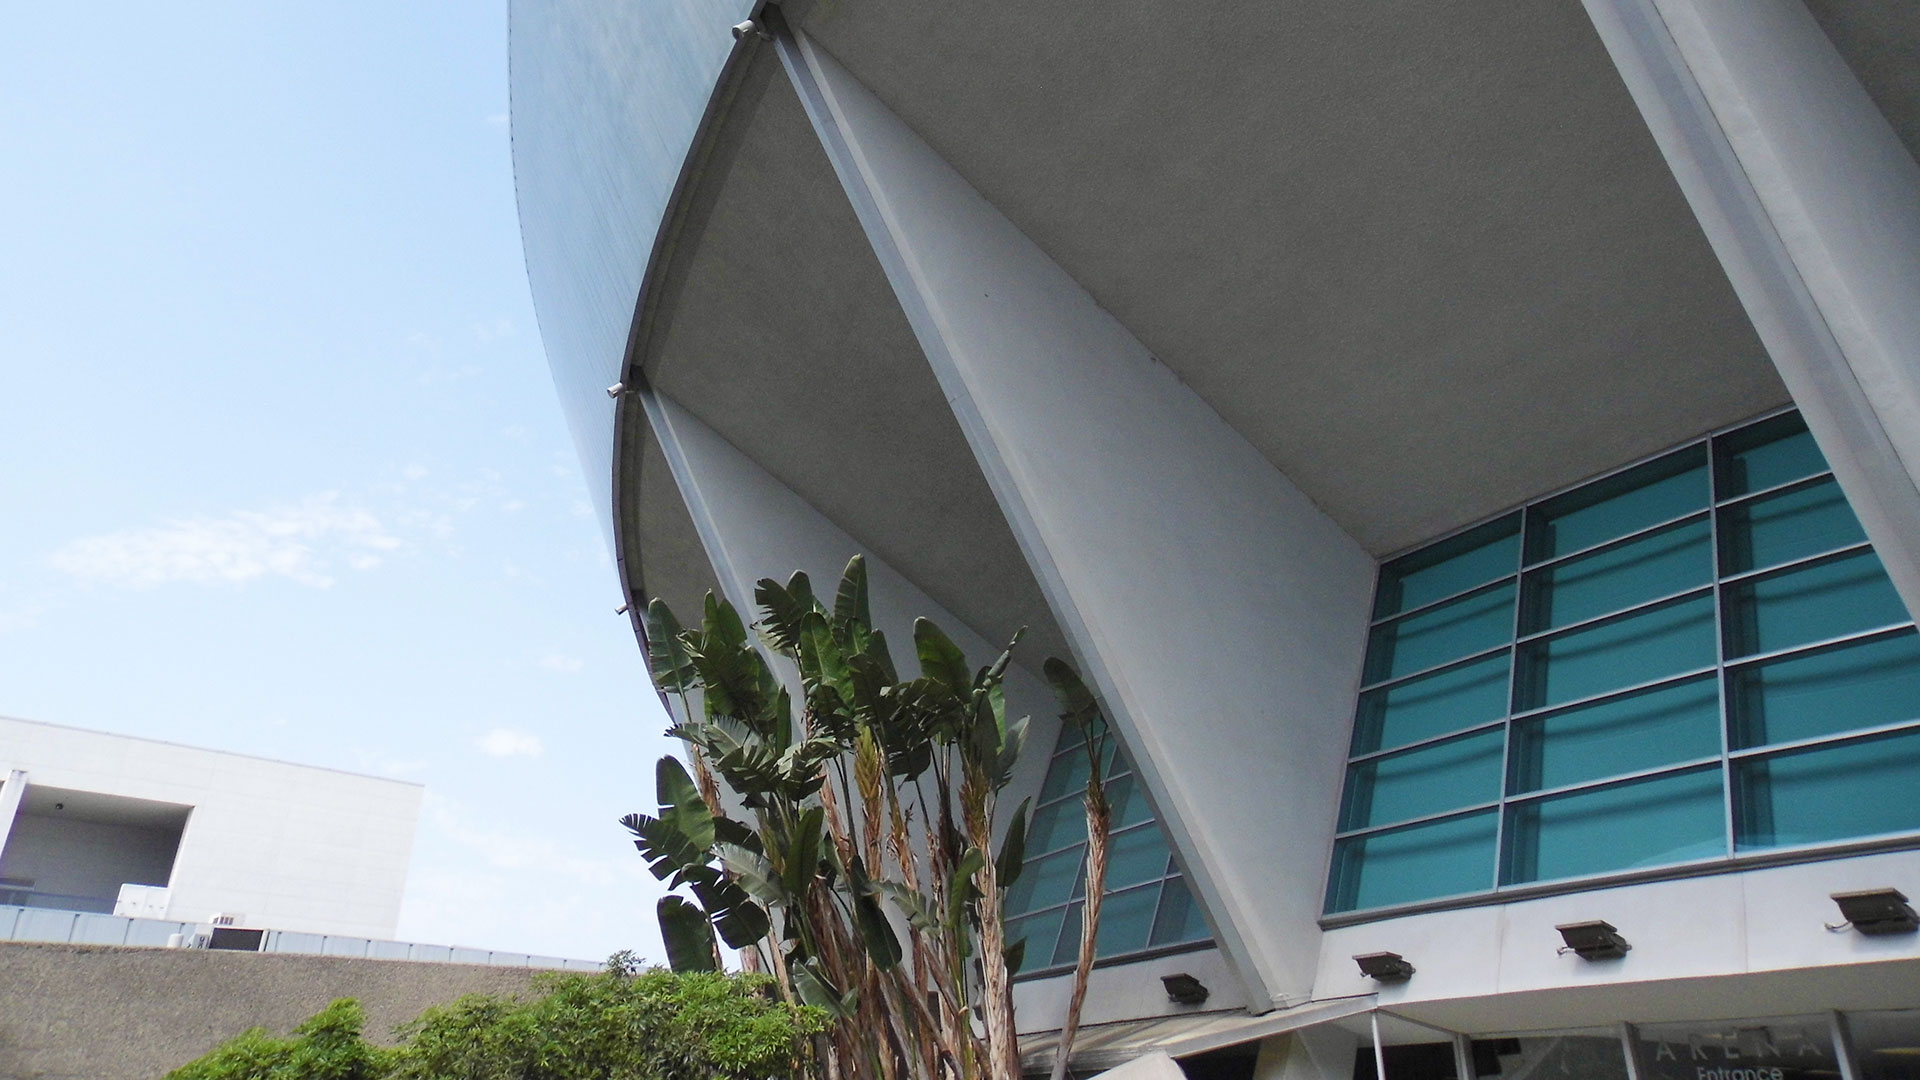 Close shot of a portion of the Anaheim Arena.